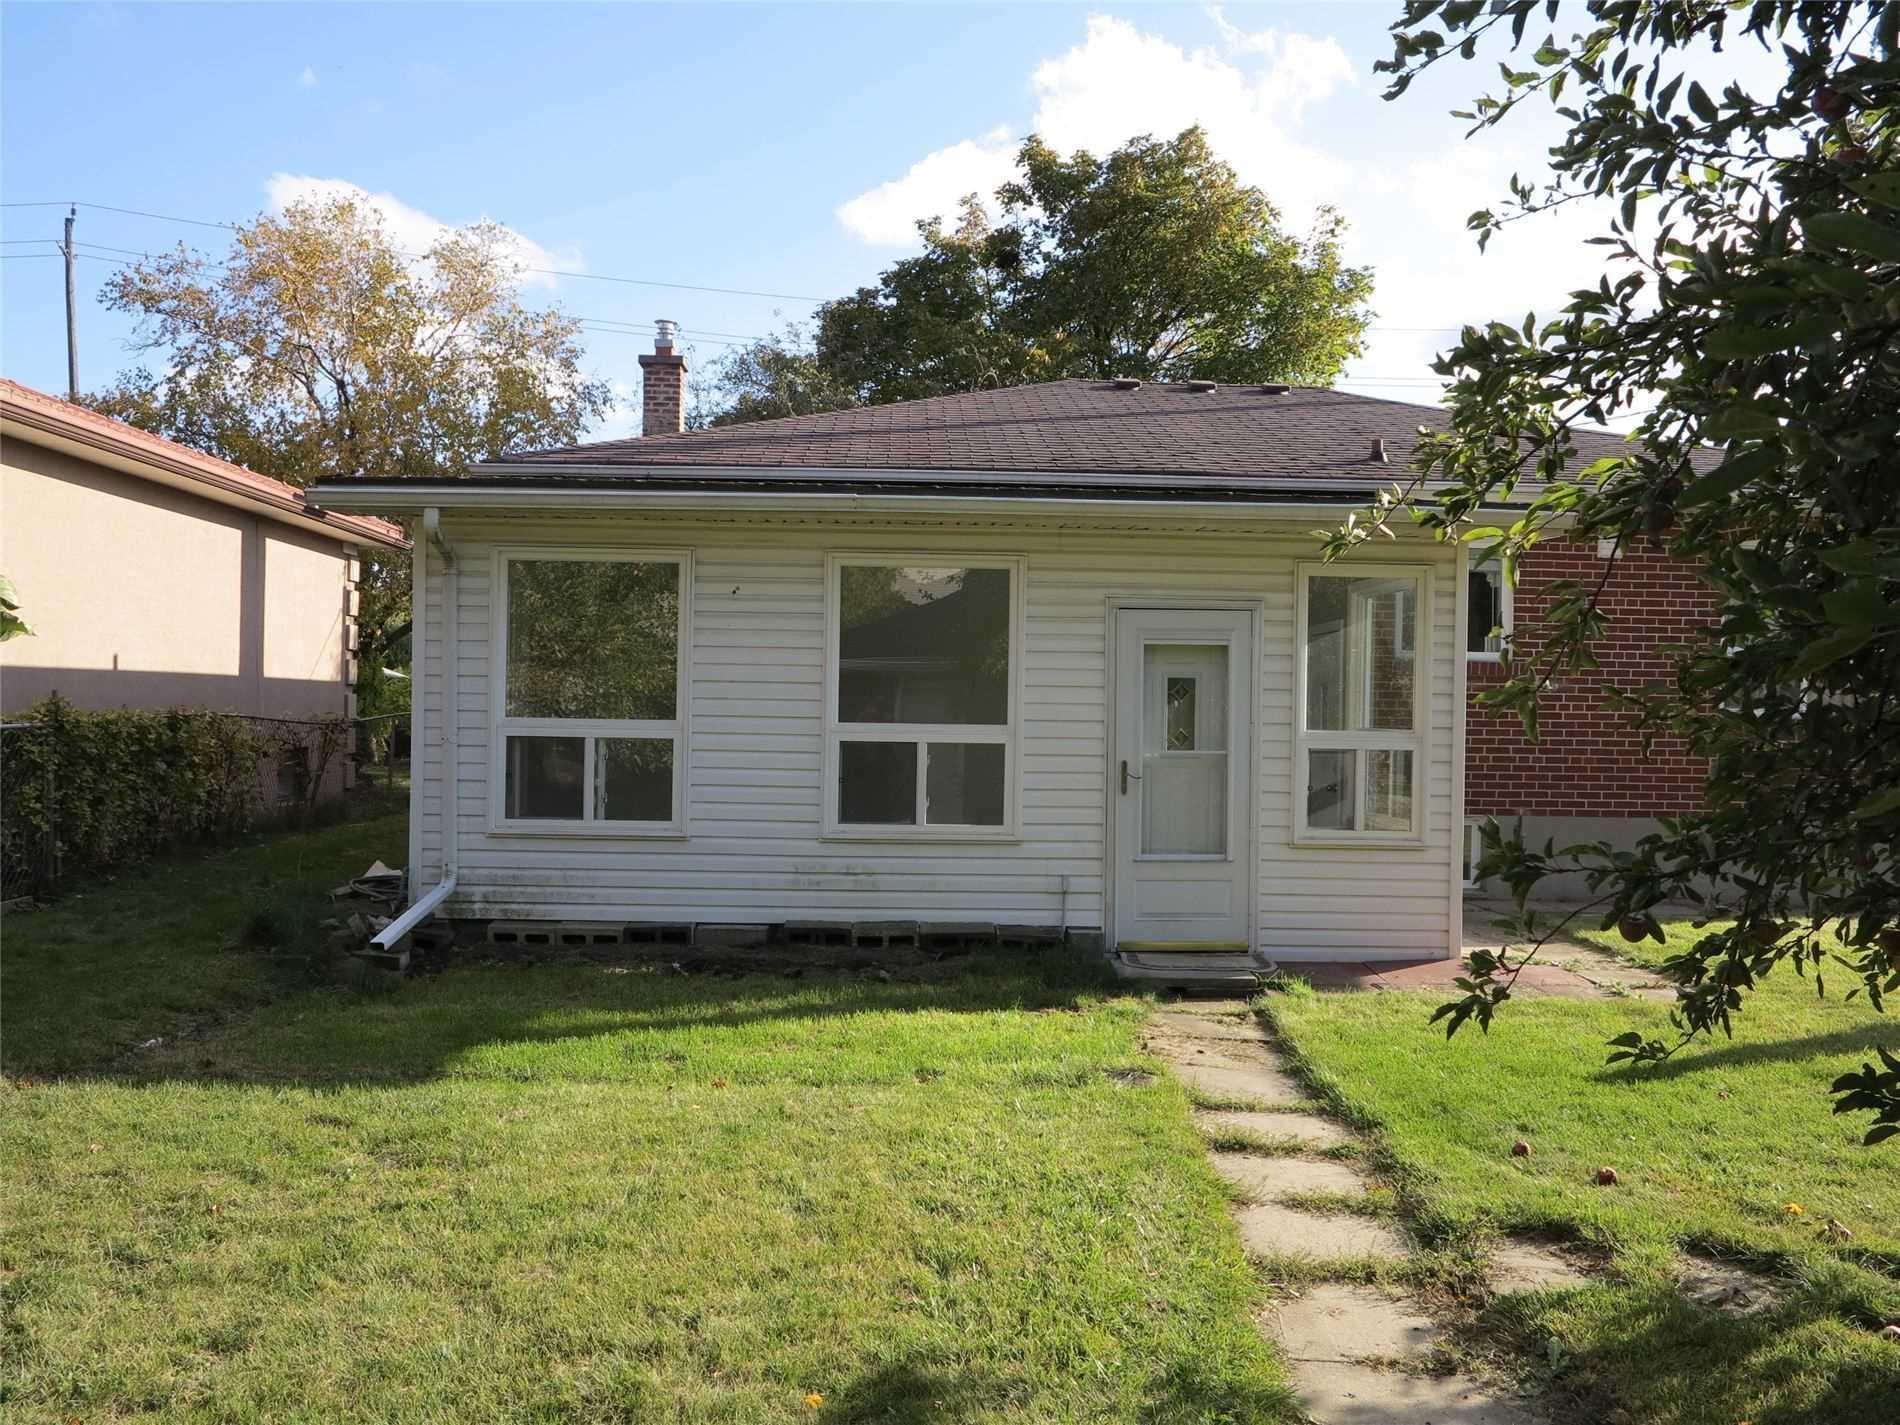 Image 25 of 30 showing inside of 3 Bedroom Detached Bungalow for Lease at 456 Drewry Ave, Toronto M2R2K7